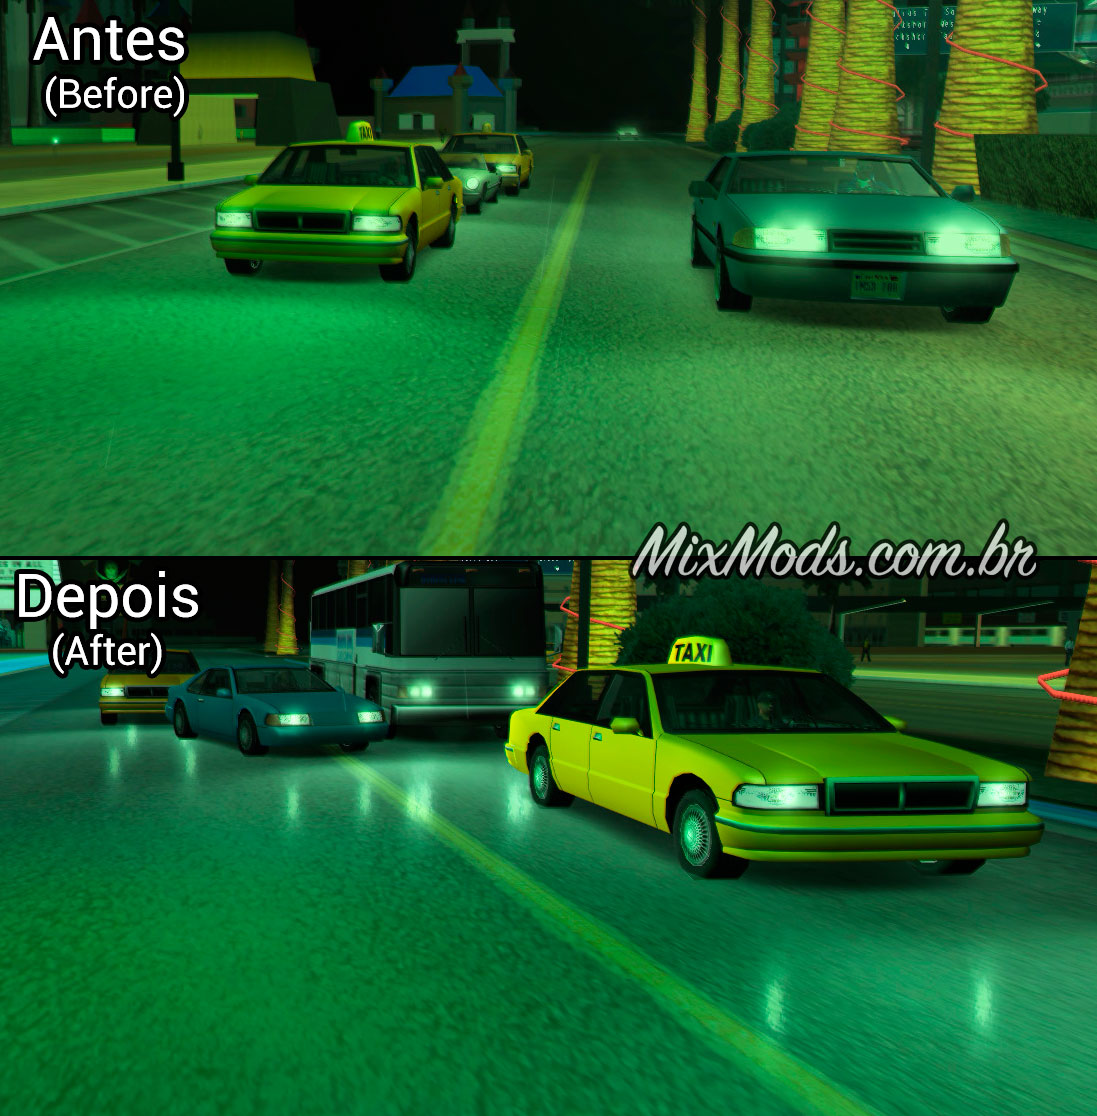 gta sa san mod map fix fixes bug corrigir reflexos molhados wet roads